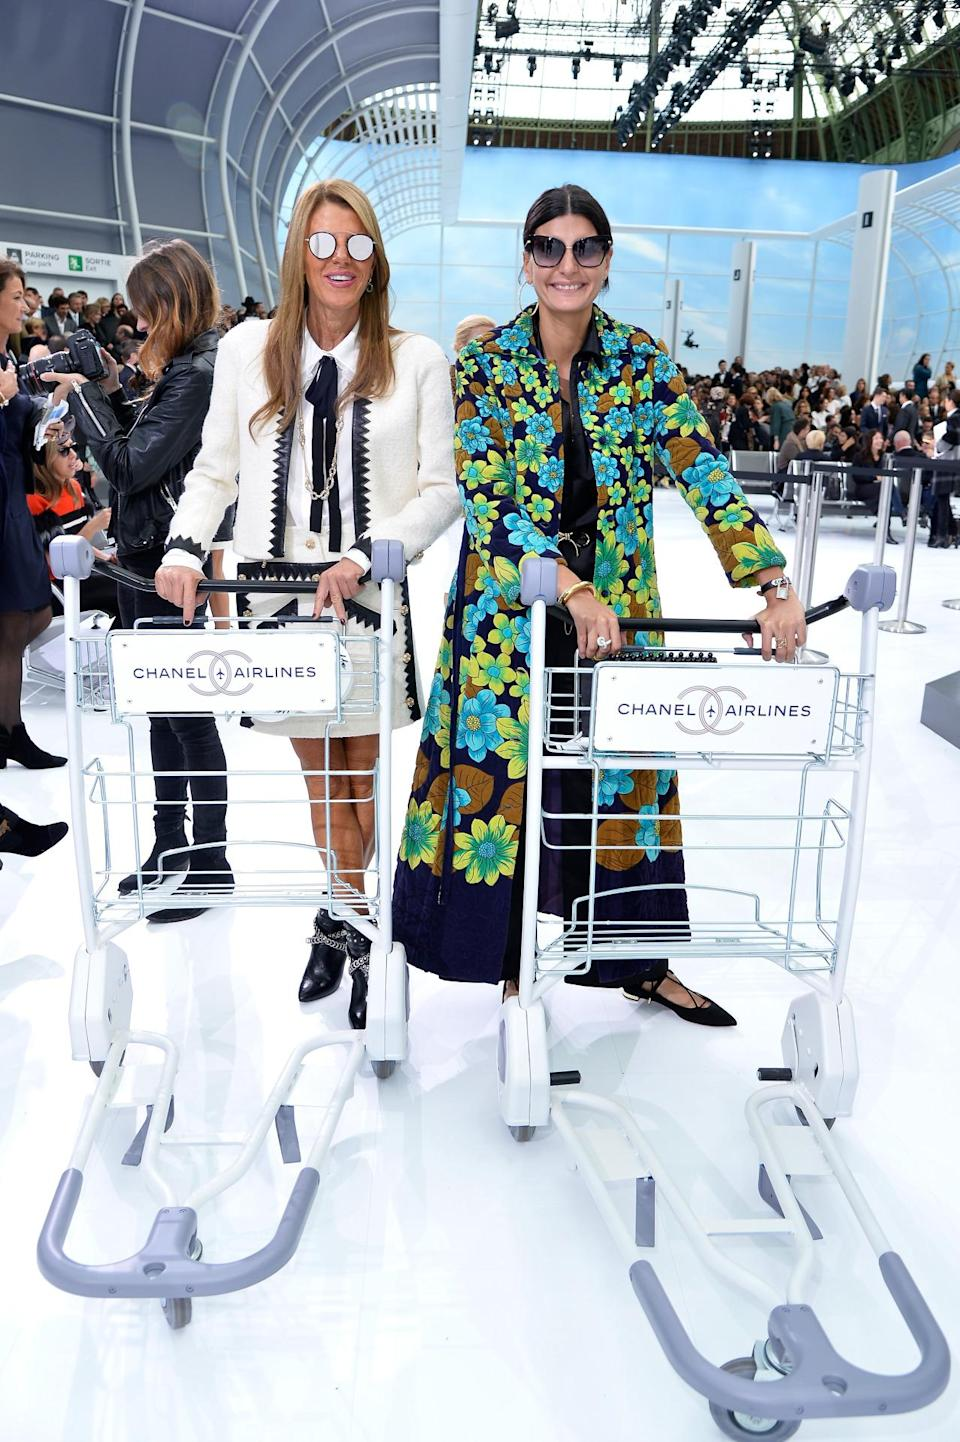 <p>Everyone loves an Instagram prop! (Even if you already have the wardrobe of Anna Dello Russo or Giovanna Battaglia.) (<i>Photo: Getty Images)</i></p>